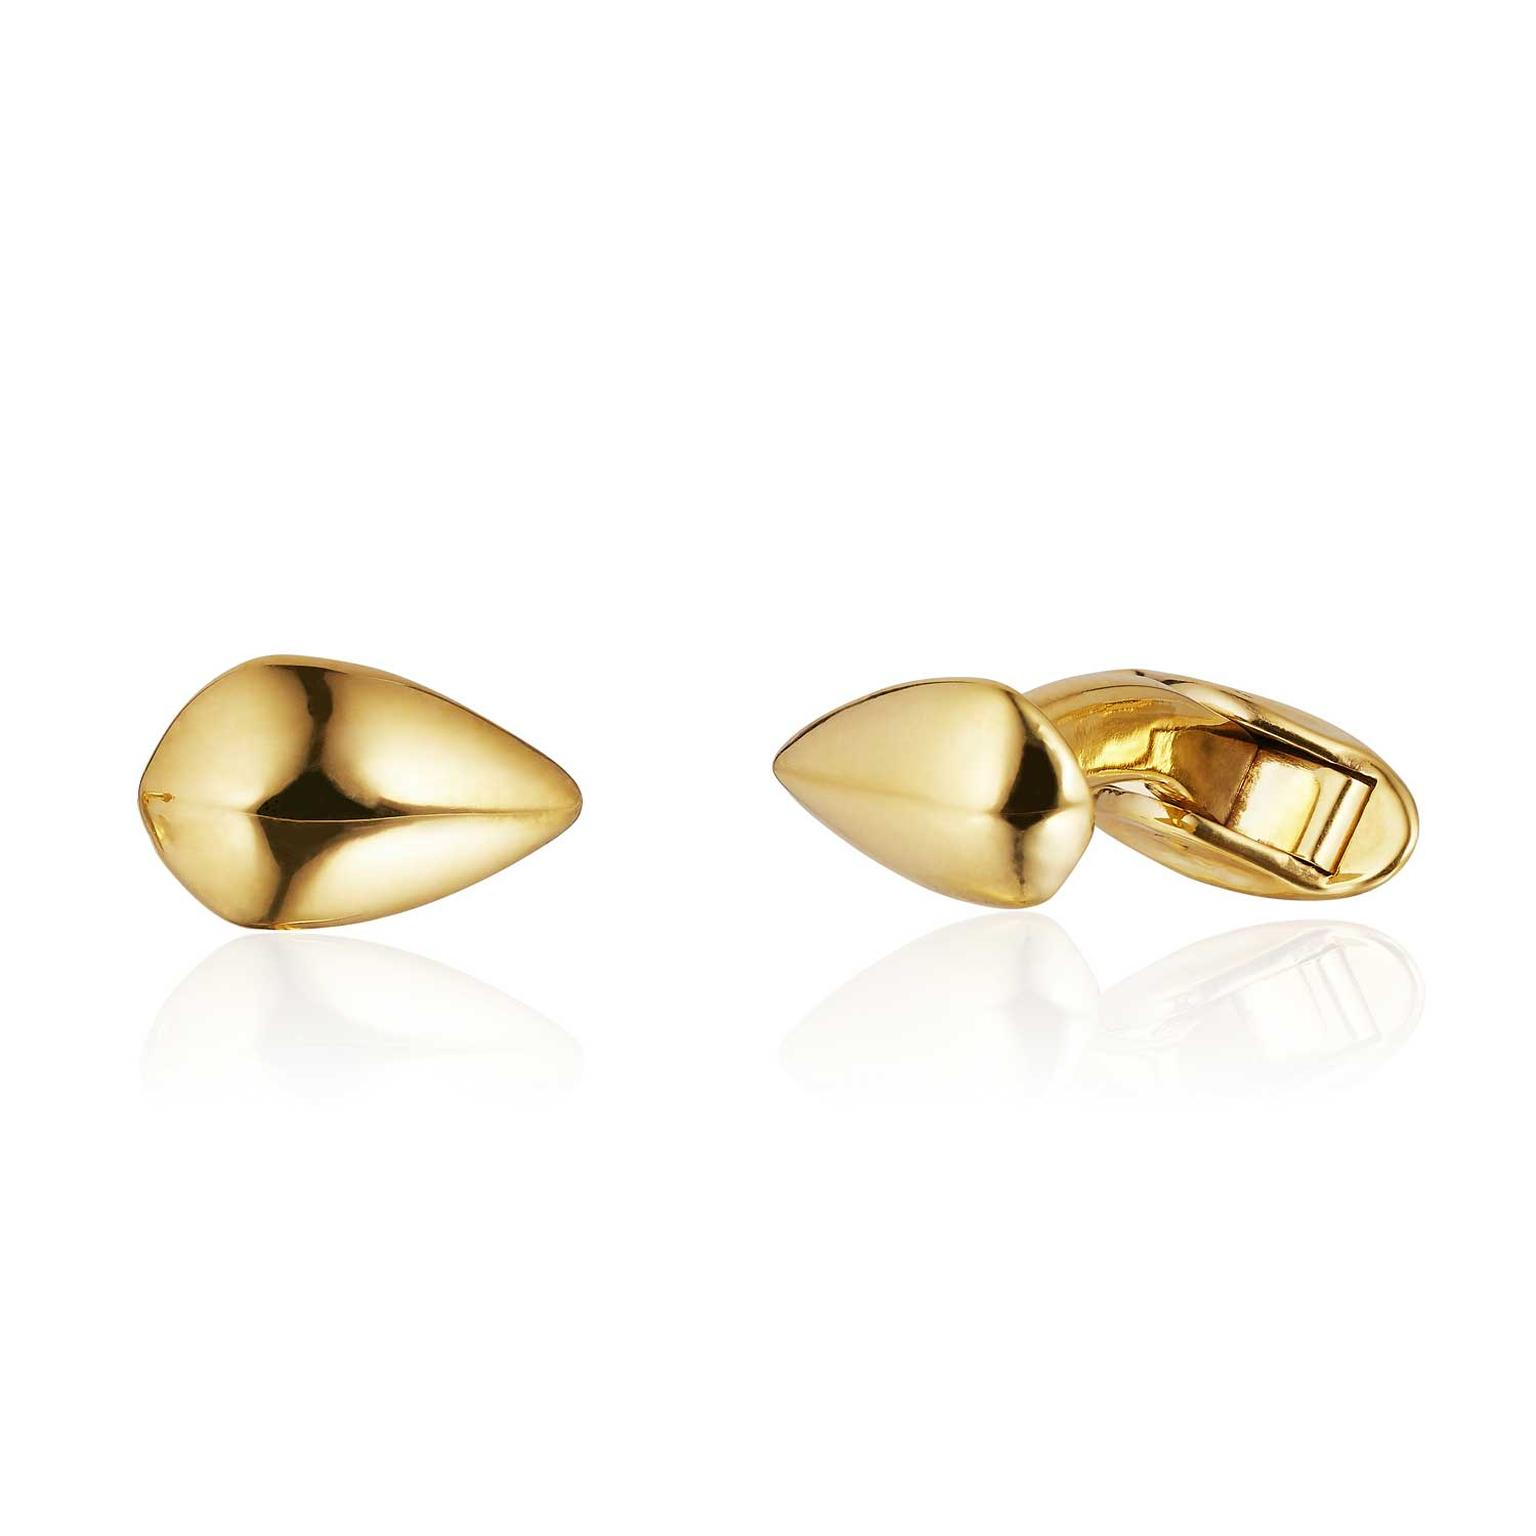 Patrick Mavros Pangolin Scale cufflinks in gold